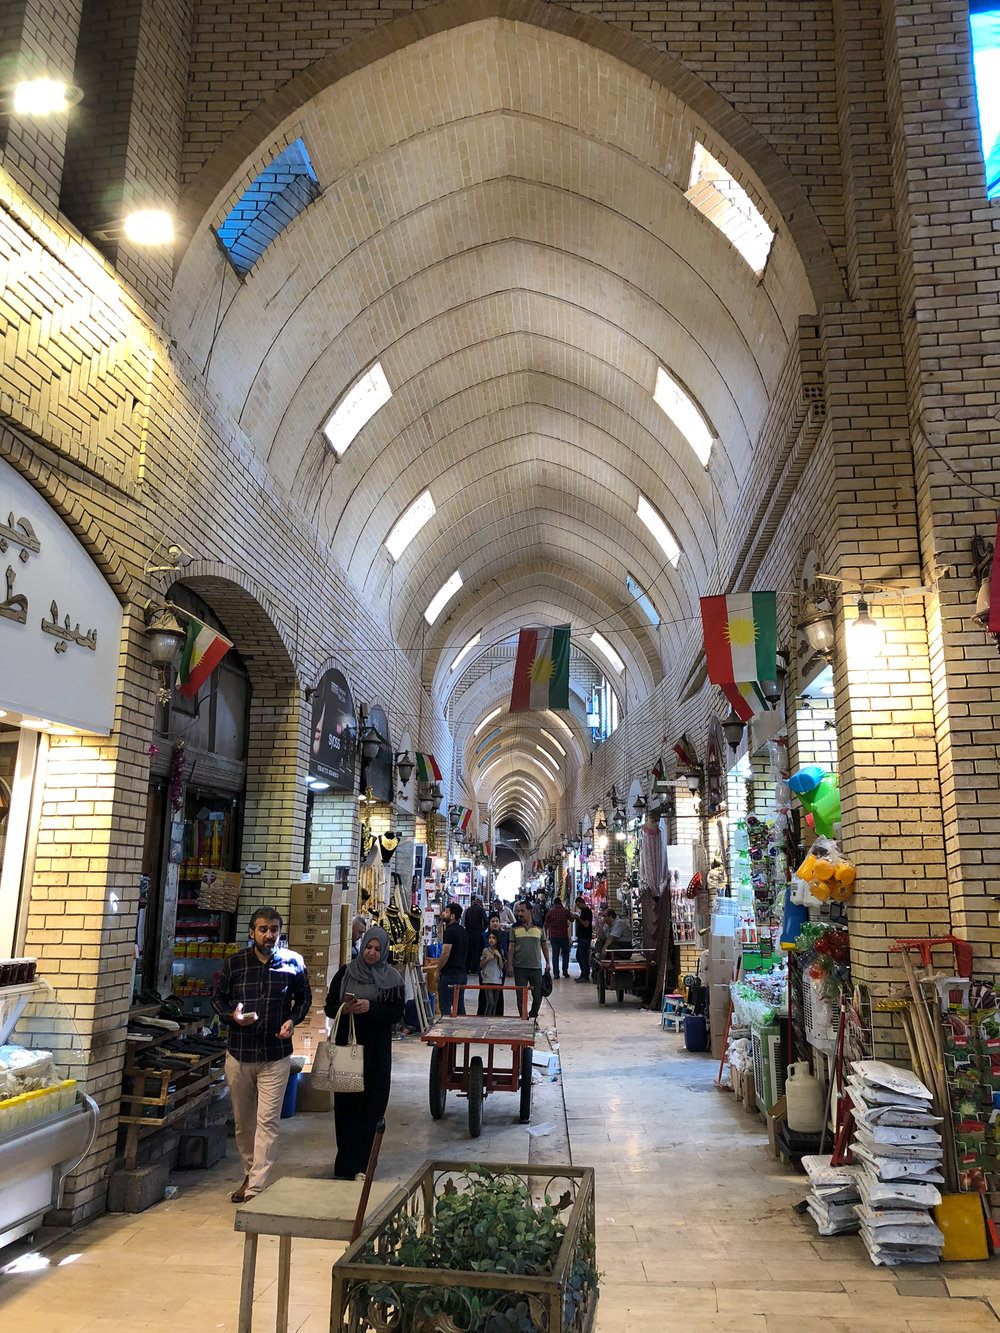 Inside the covered bazaar of Erbil